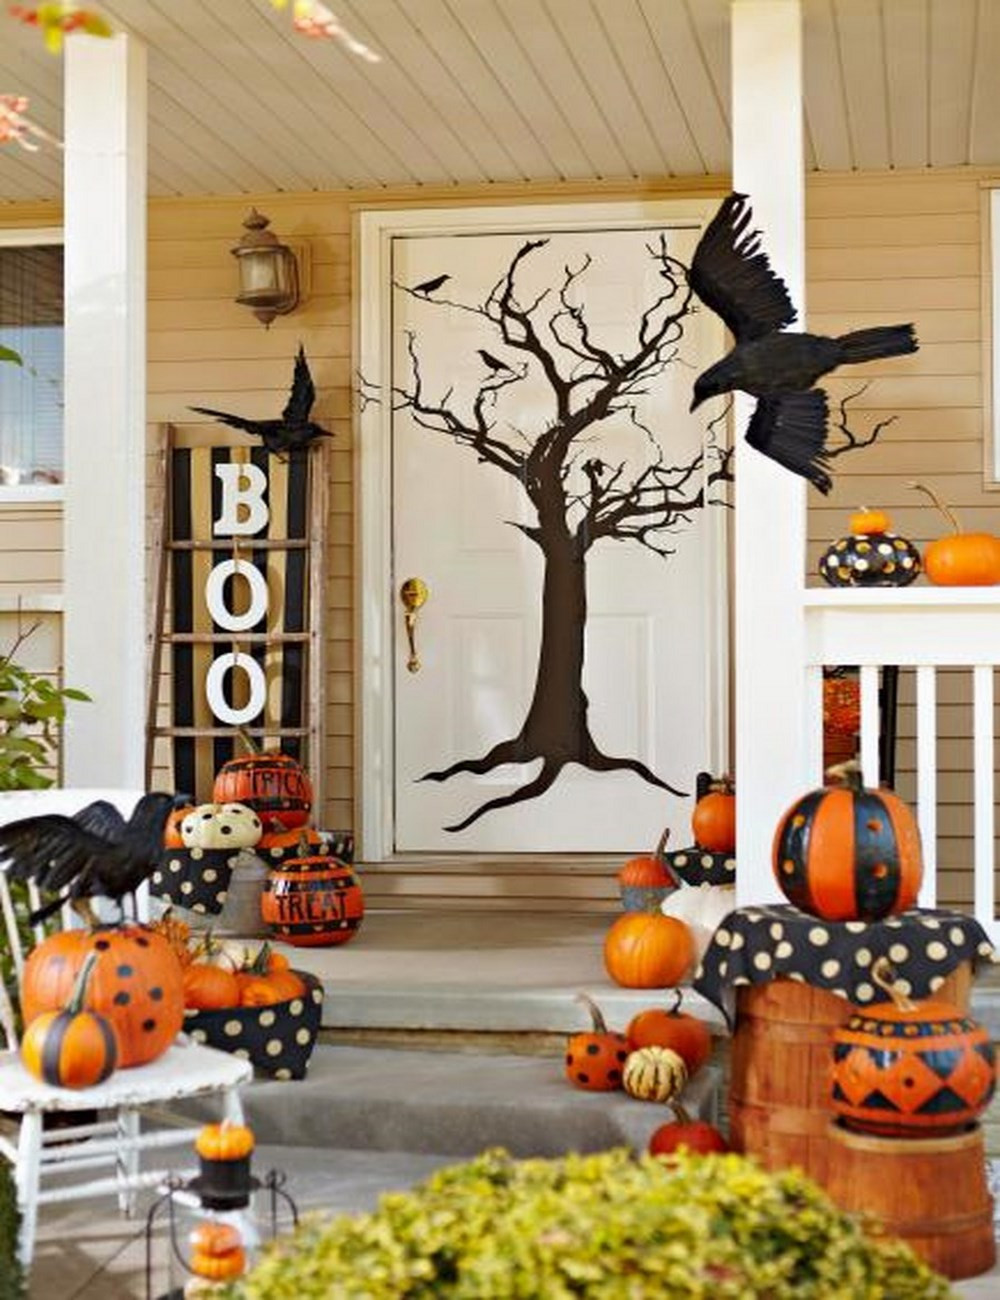 Diy Halloween Porch Decorations  Cute Halloween Front Porch Decorations to Greet Your Guests